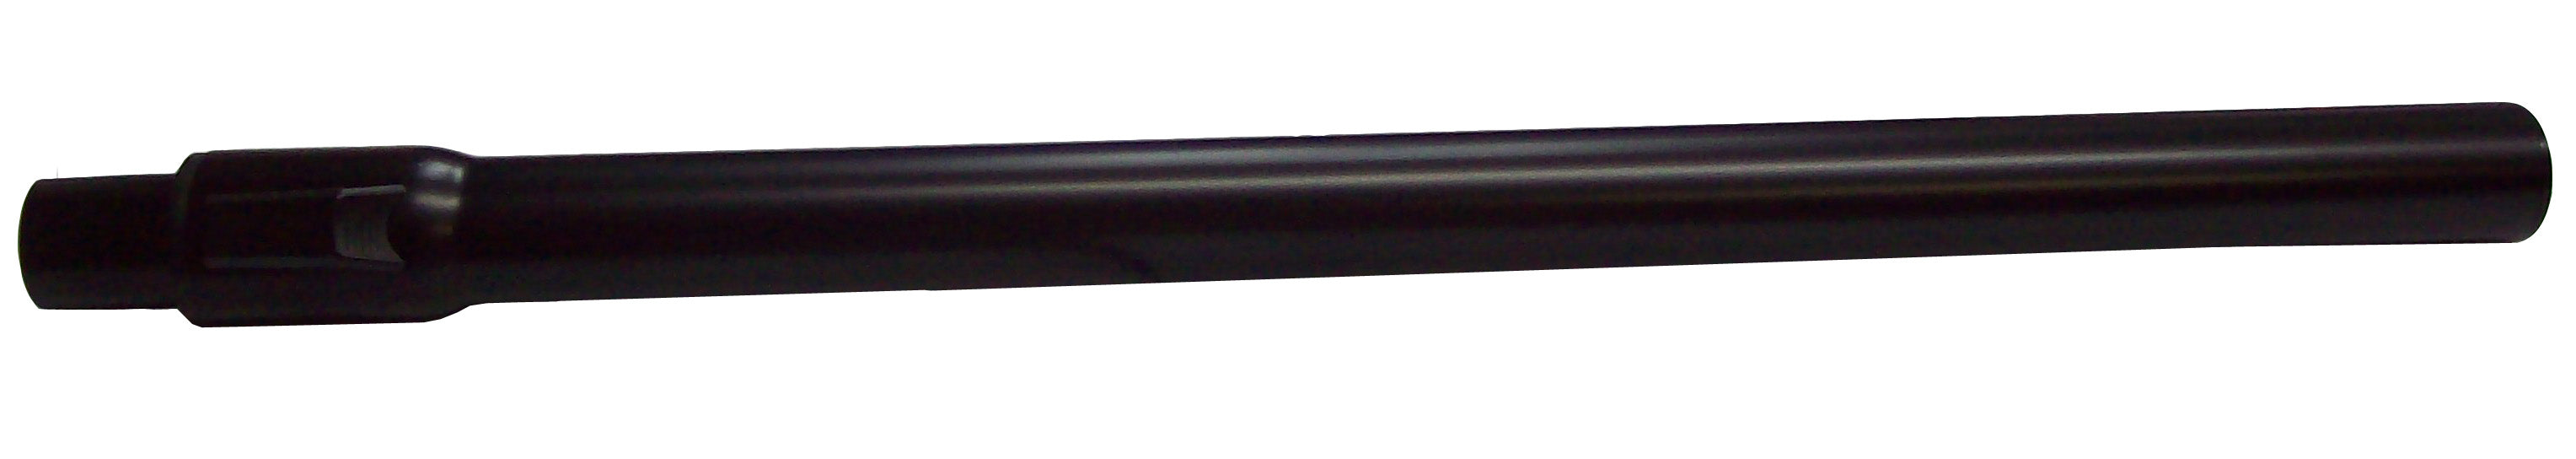 Telescopic Rod Chrome 32mm